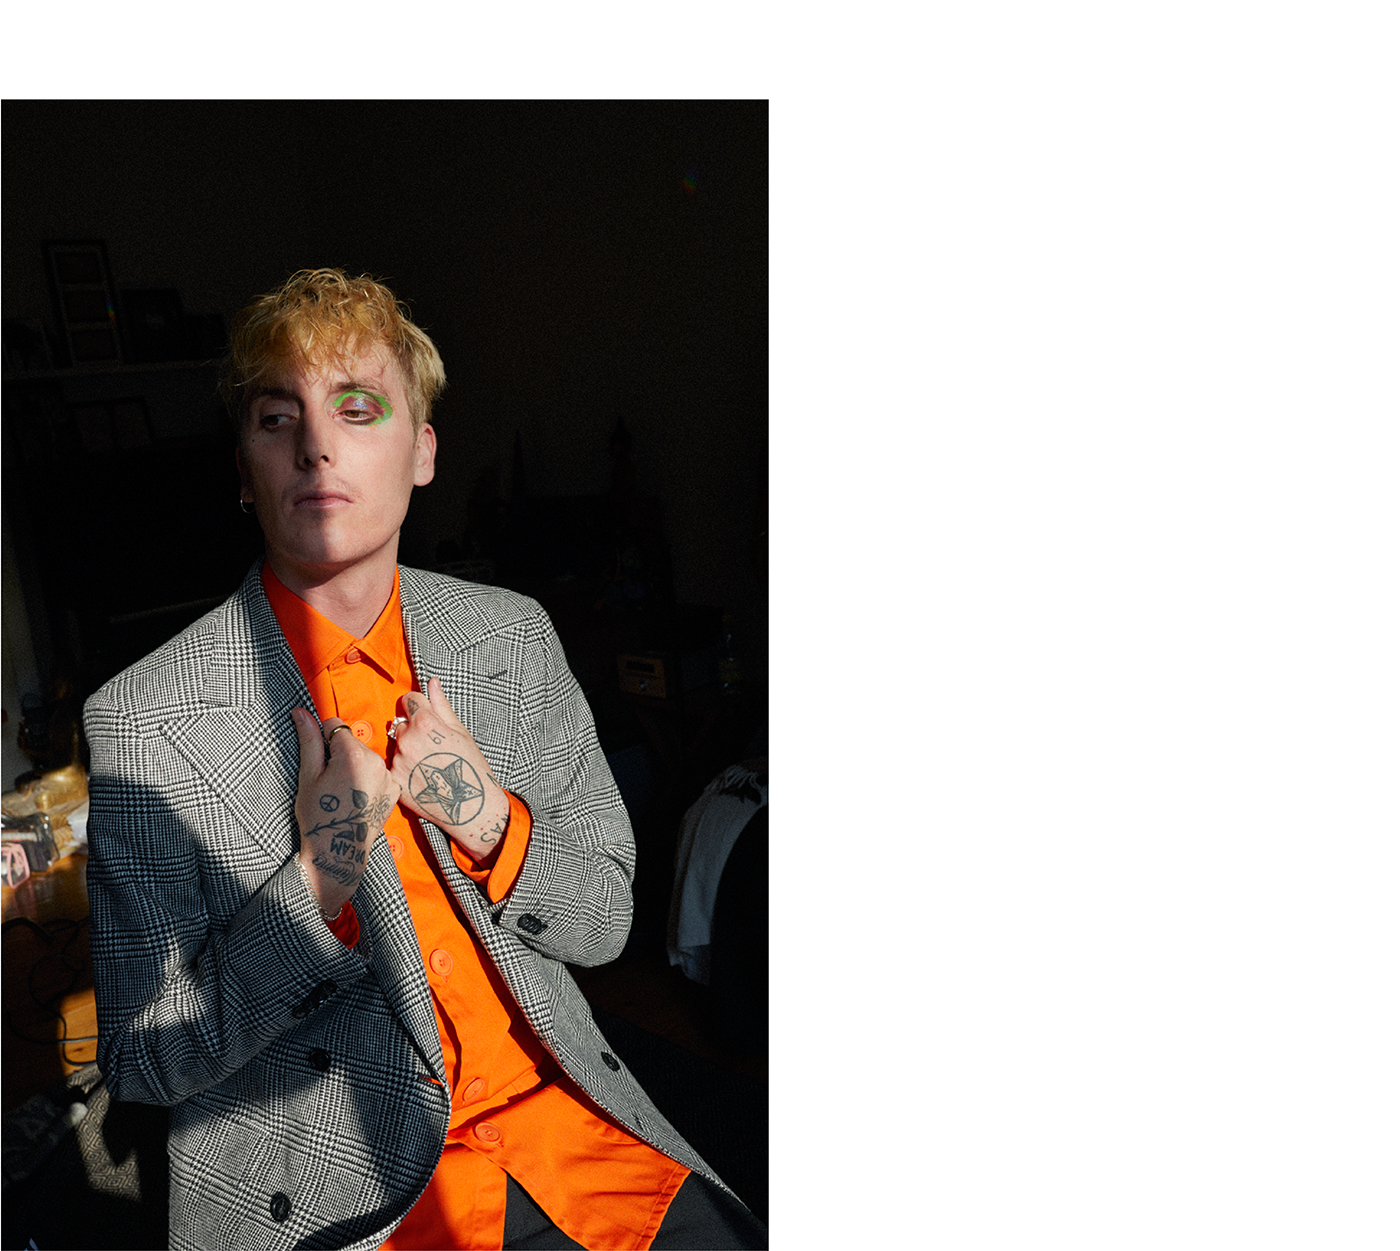 Jacket by Oscar Jacobson. Top by Schnayderman's. Trousers by Acne Studios. Bracelet, talent's own. Rings by All Blues.